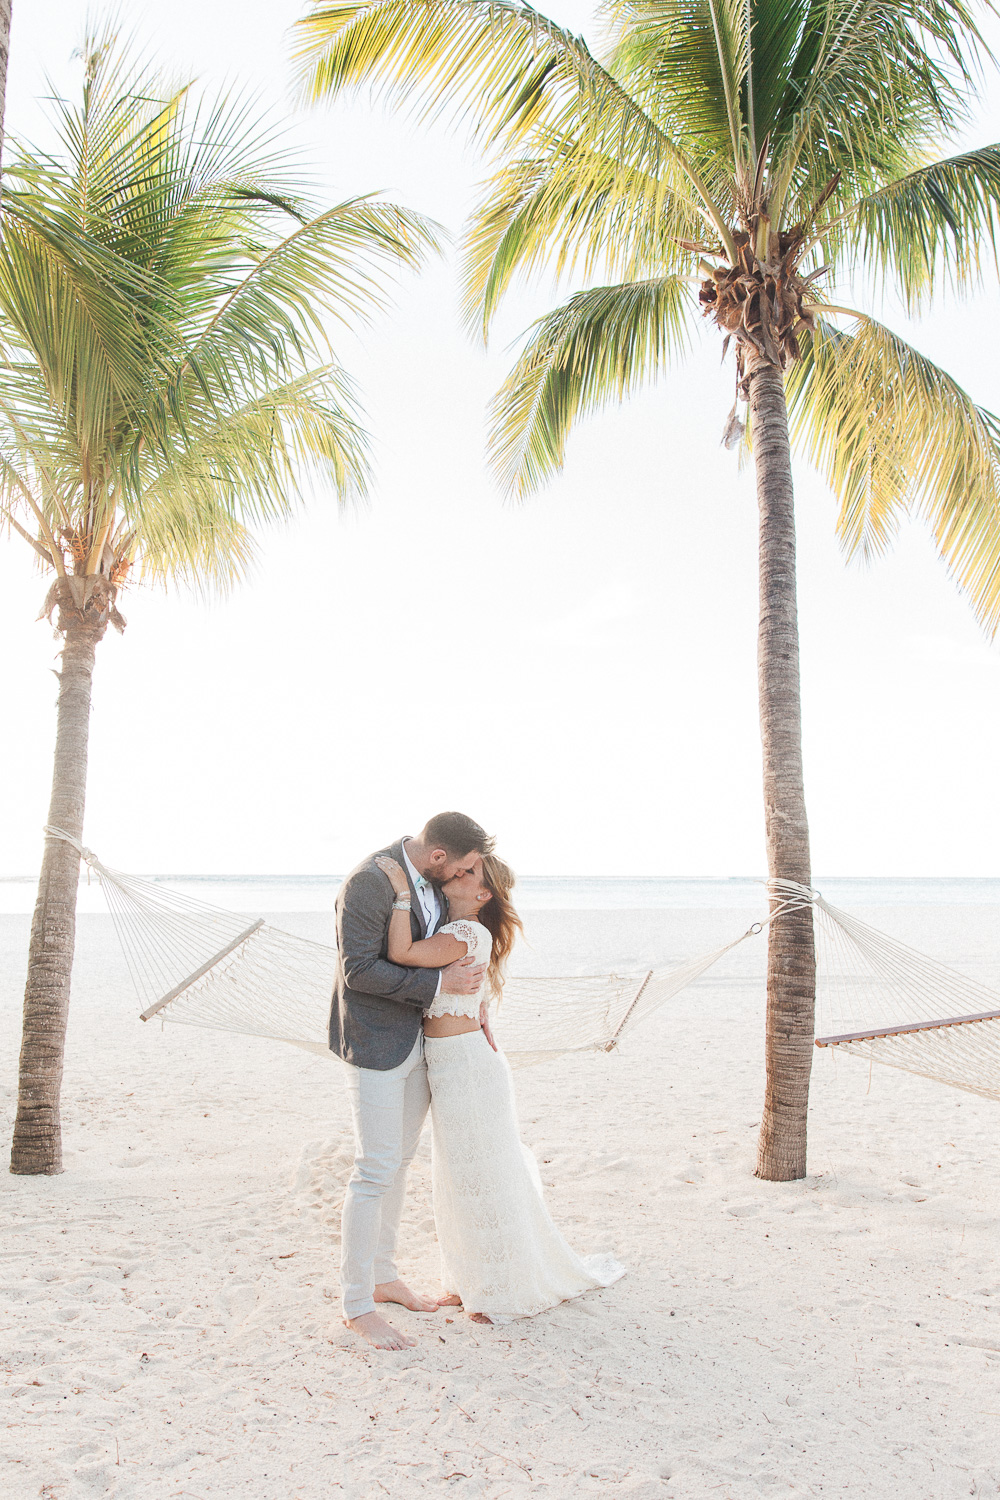 Bride and groom kissing under the palm trees at their destination wedding in Mauritius